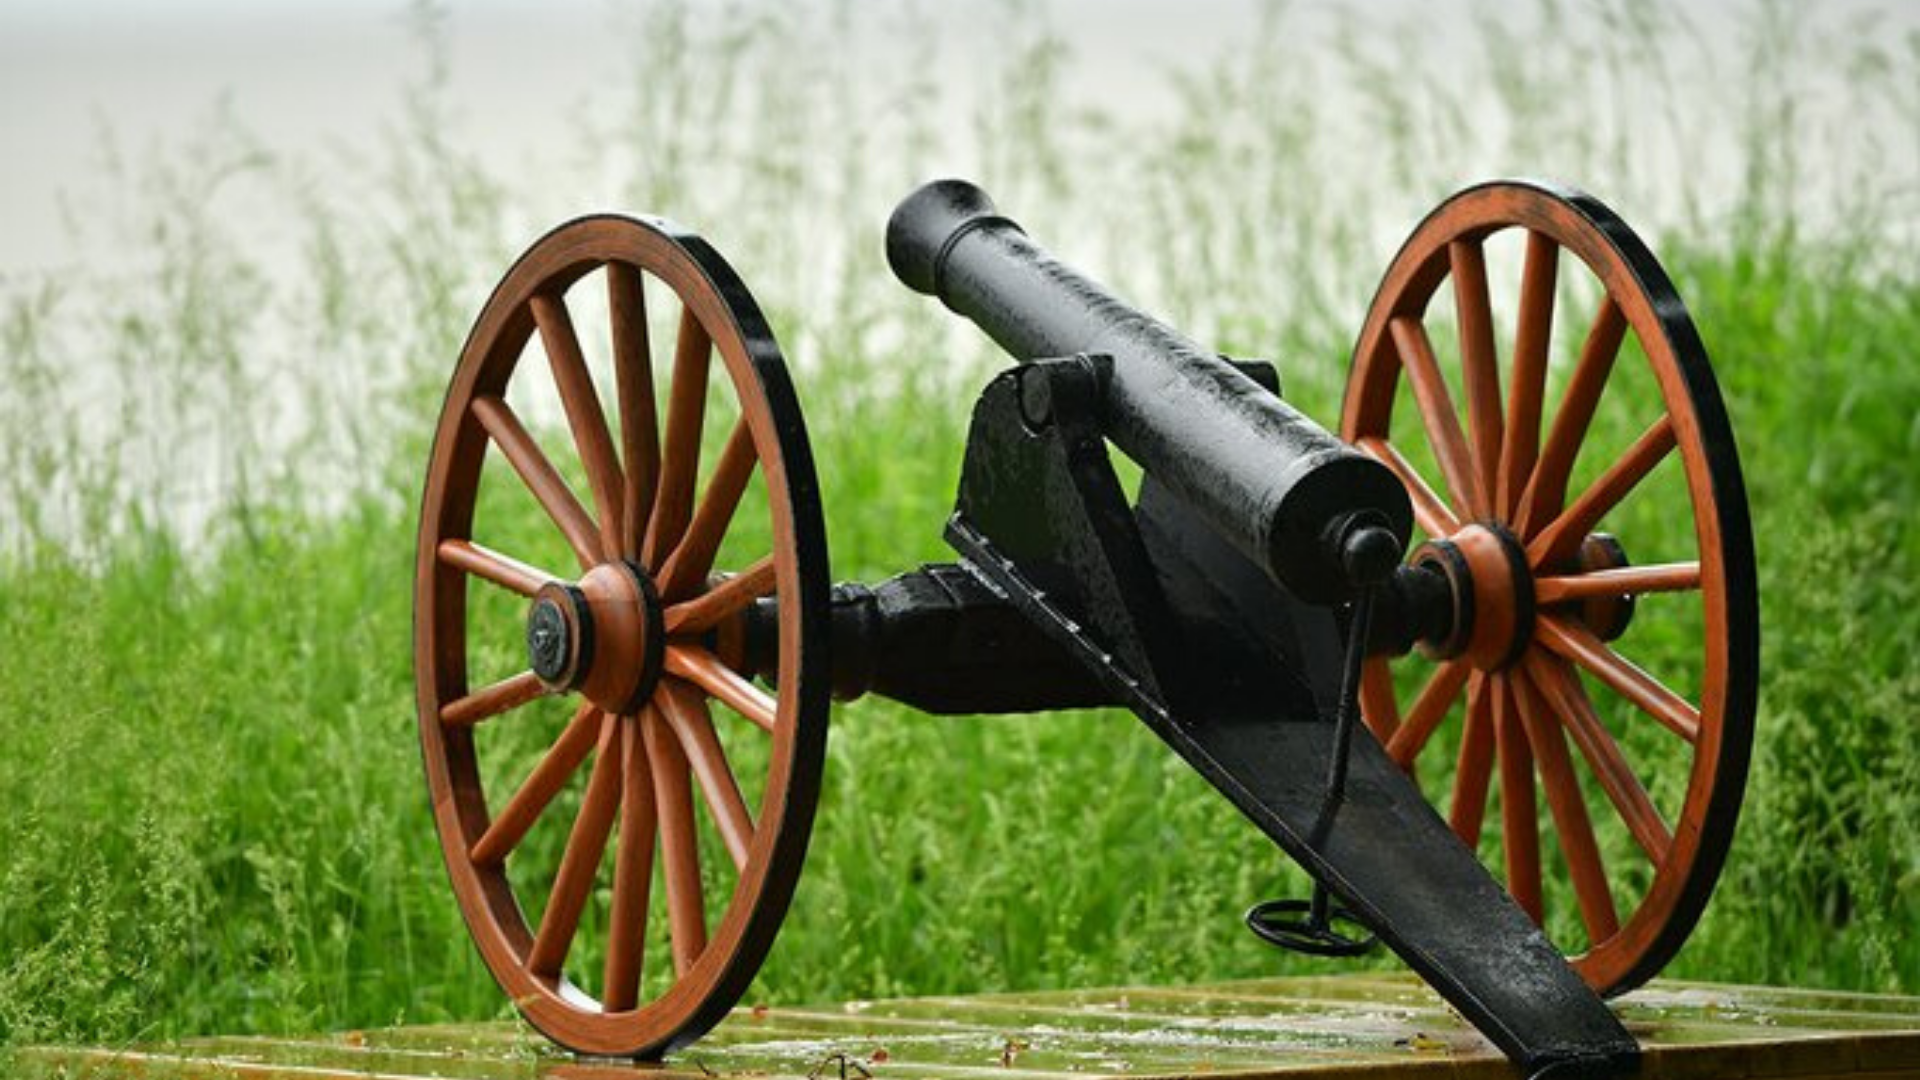 3 Reasons to Join The Cannon Club